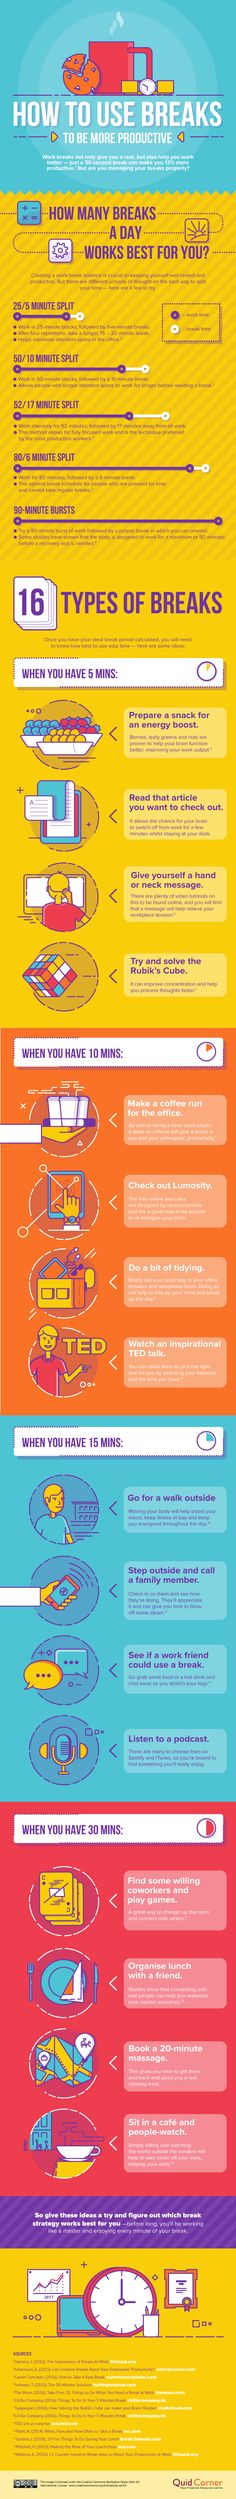 How to Use Breaks to Be More Productive Infographic - http://elearninginfographics.com/how-to-use-breaks-to-be-more-productive-infographic/